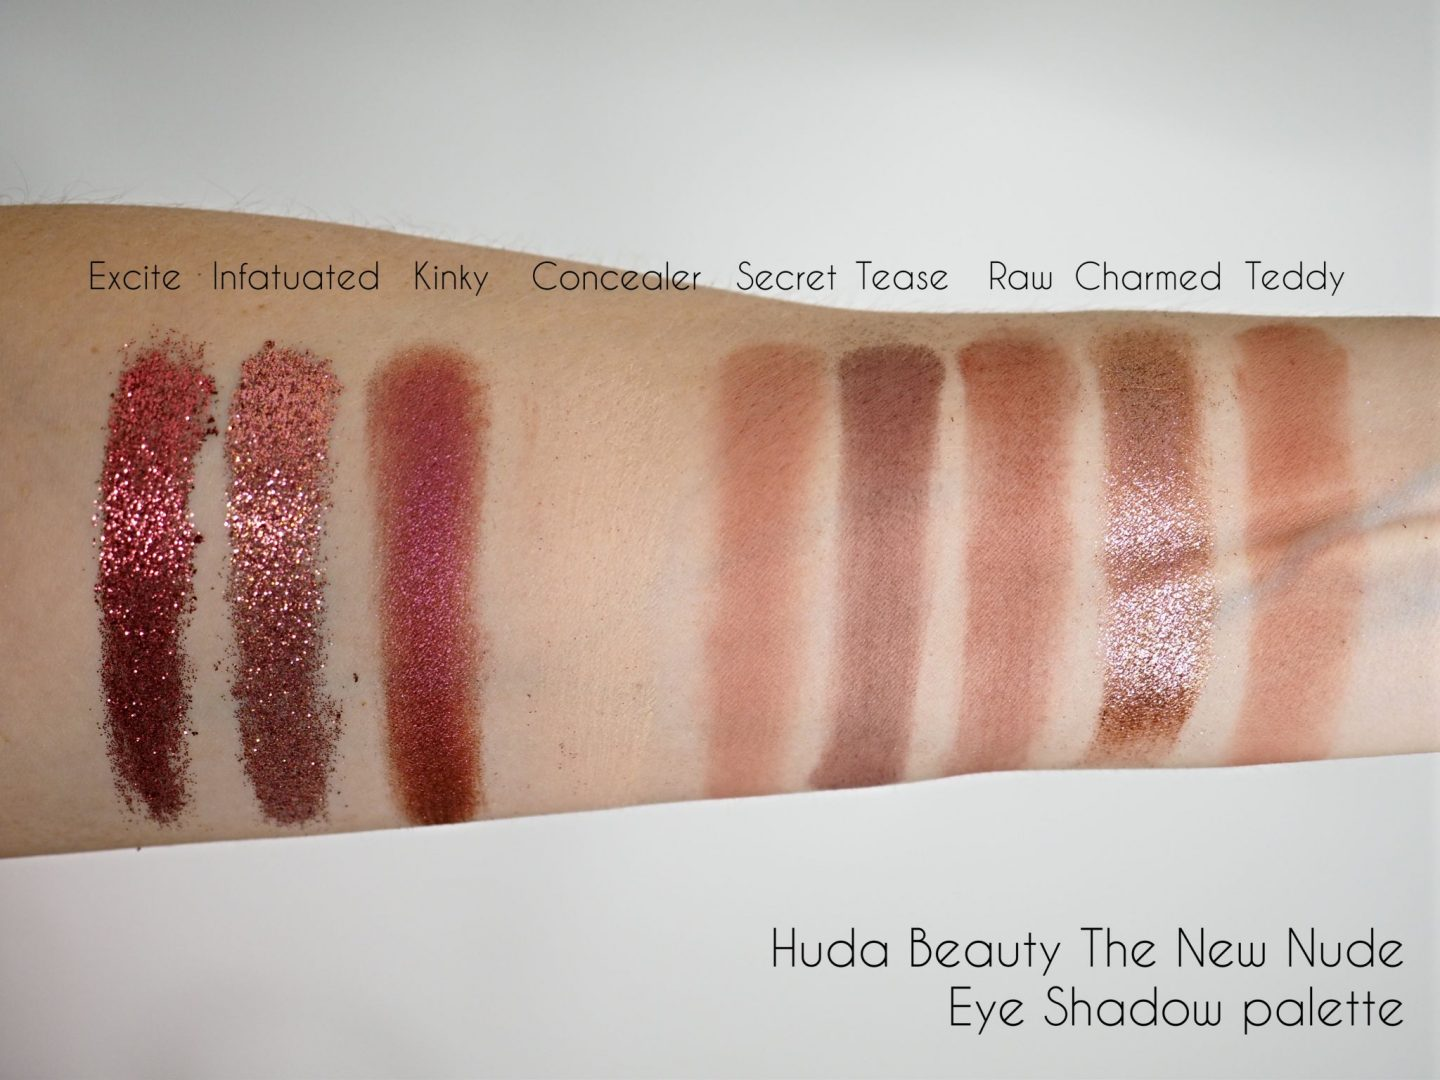 Huda Beauty The New Nude Eye Shadow Palette swatches